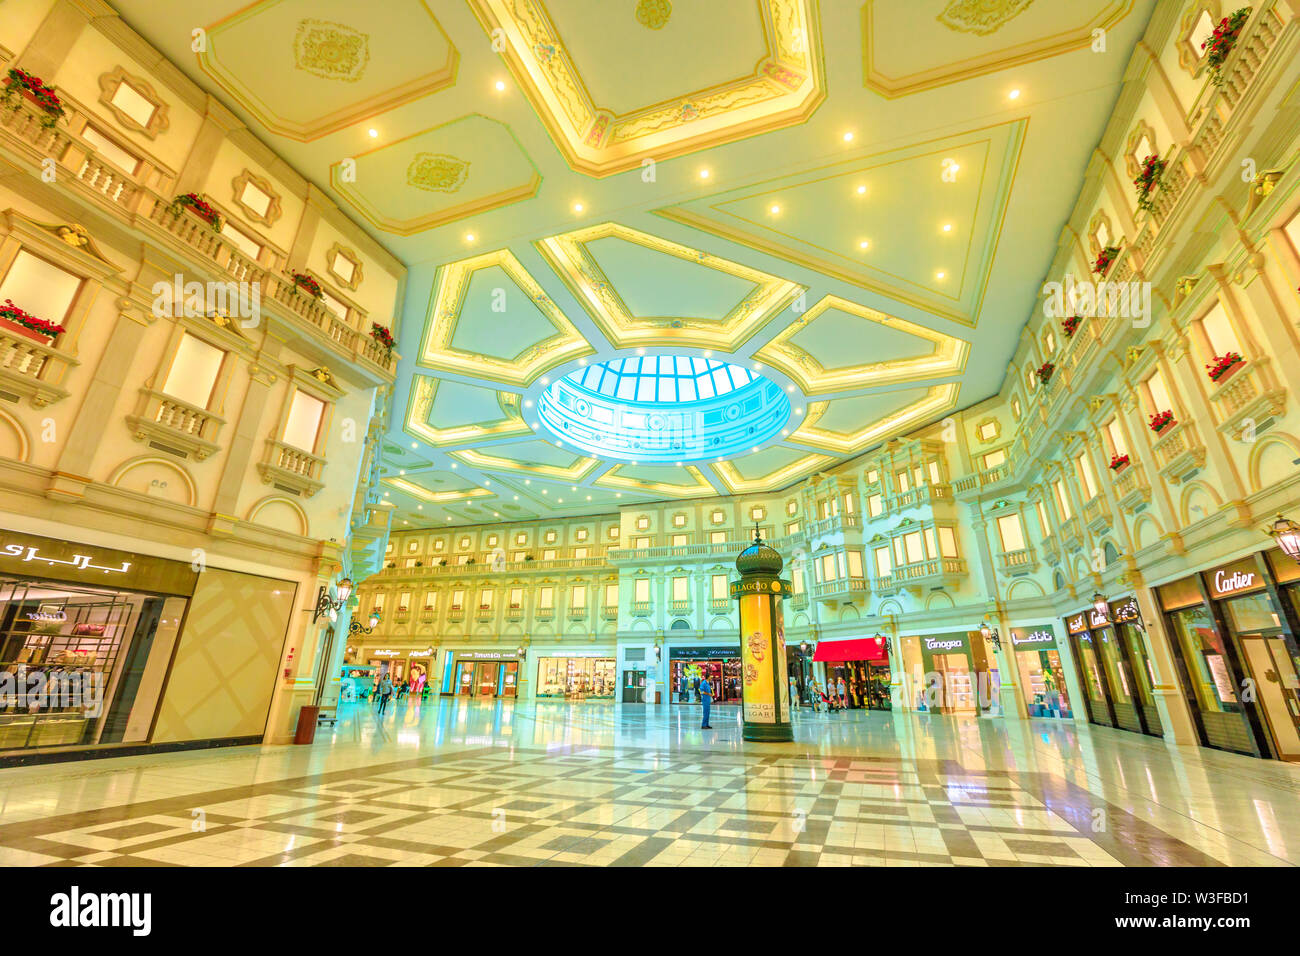 Doha, Qatar - February 21, 2019: luxury brands, expensive stores and exclusive shops in Doha shopping mall. Villaggio Mall, is a shopping center in As - Stock Image